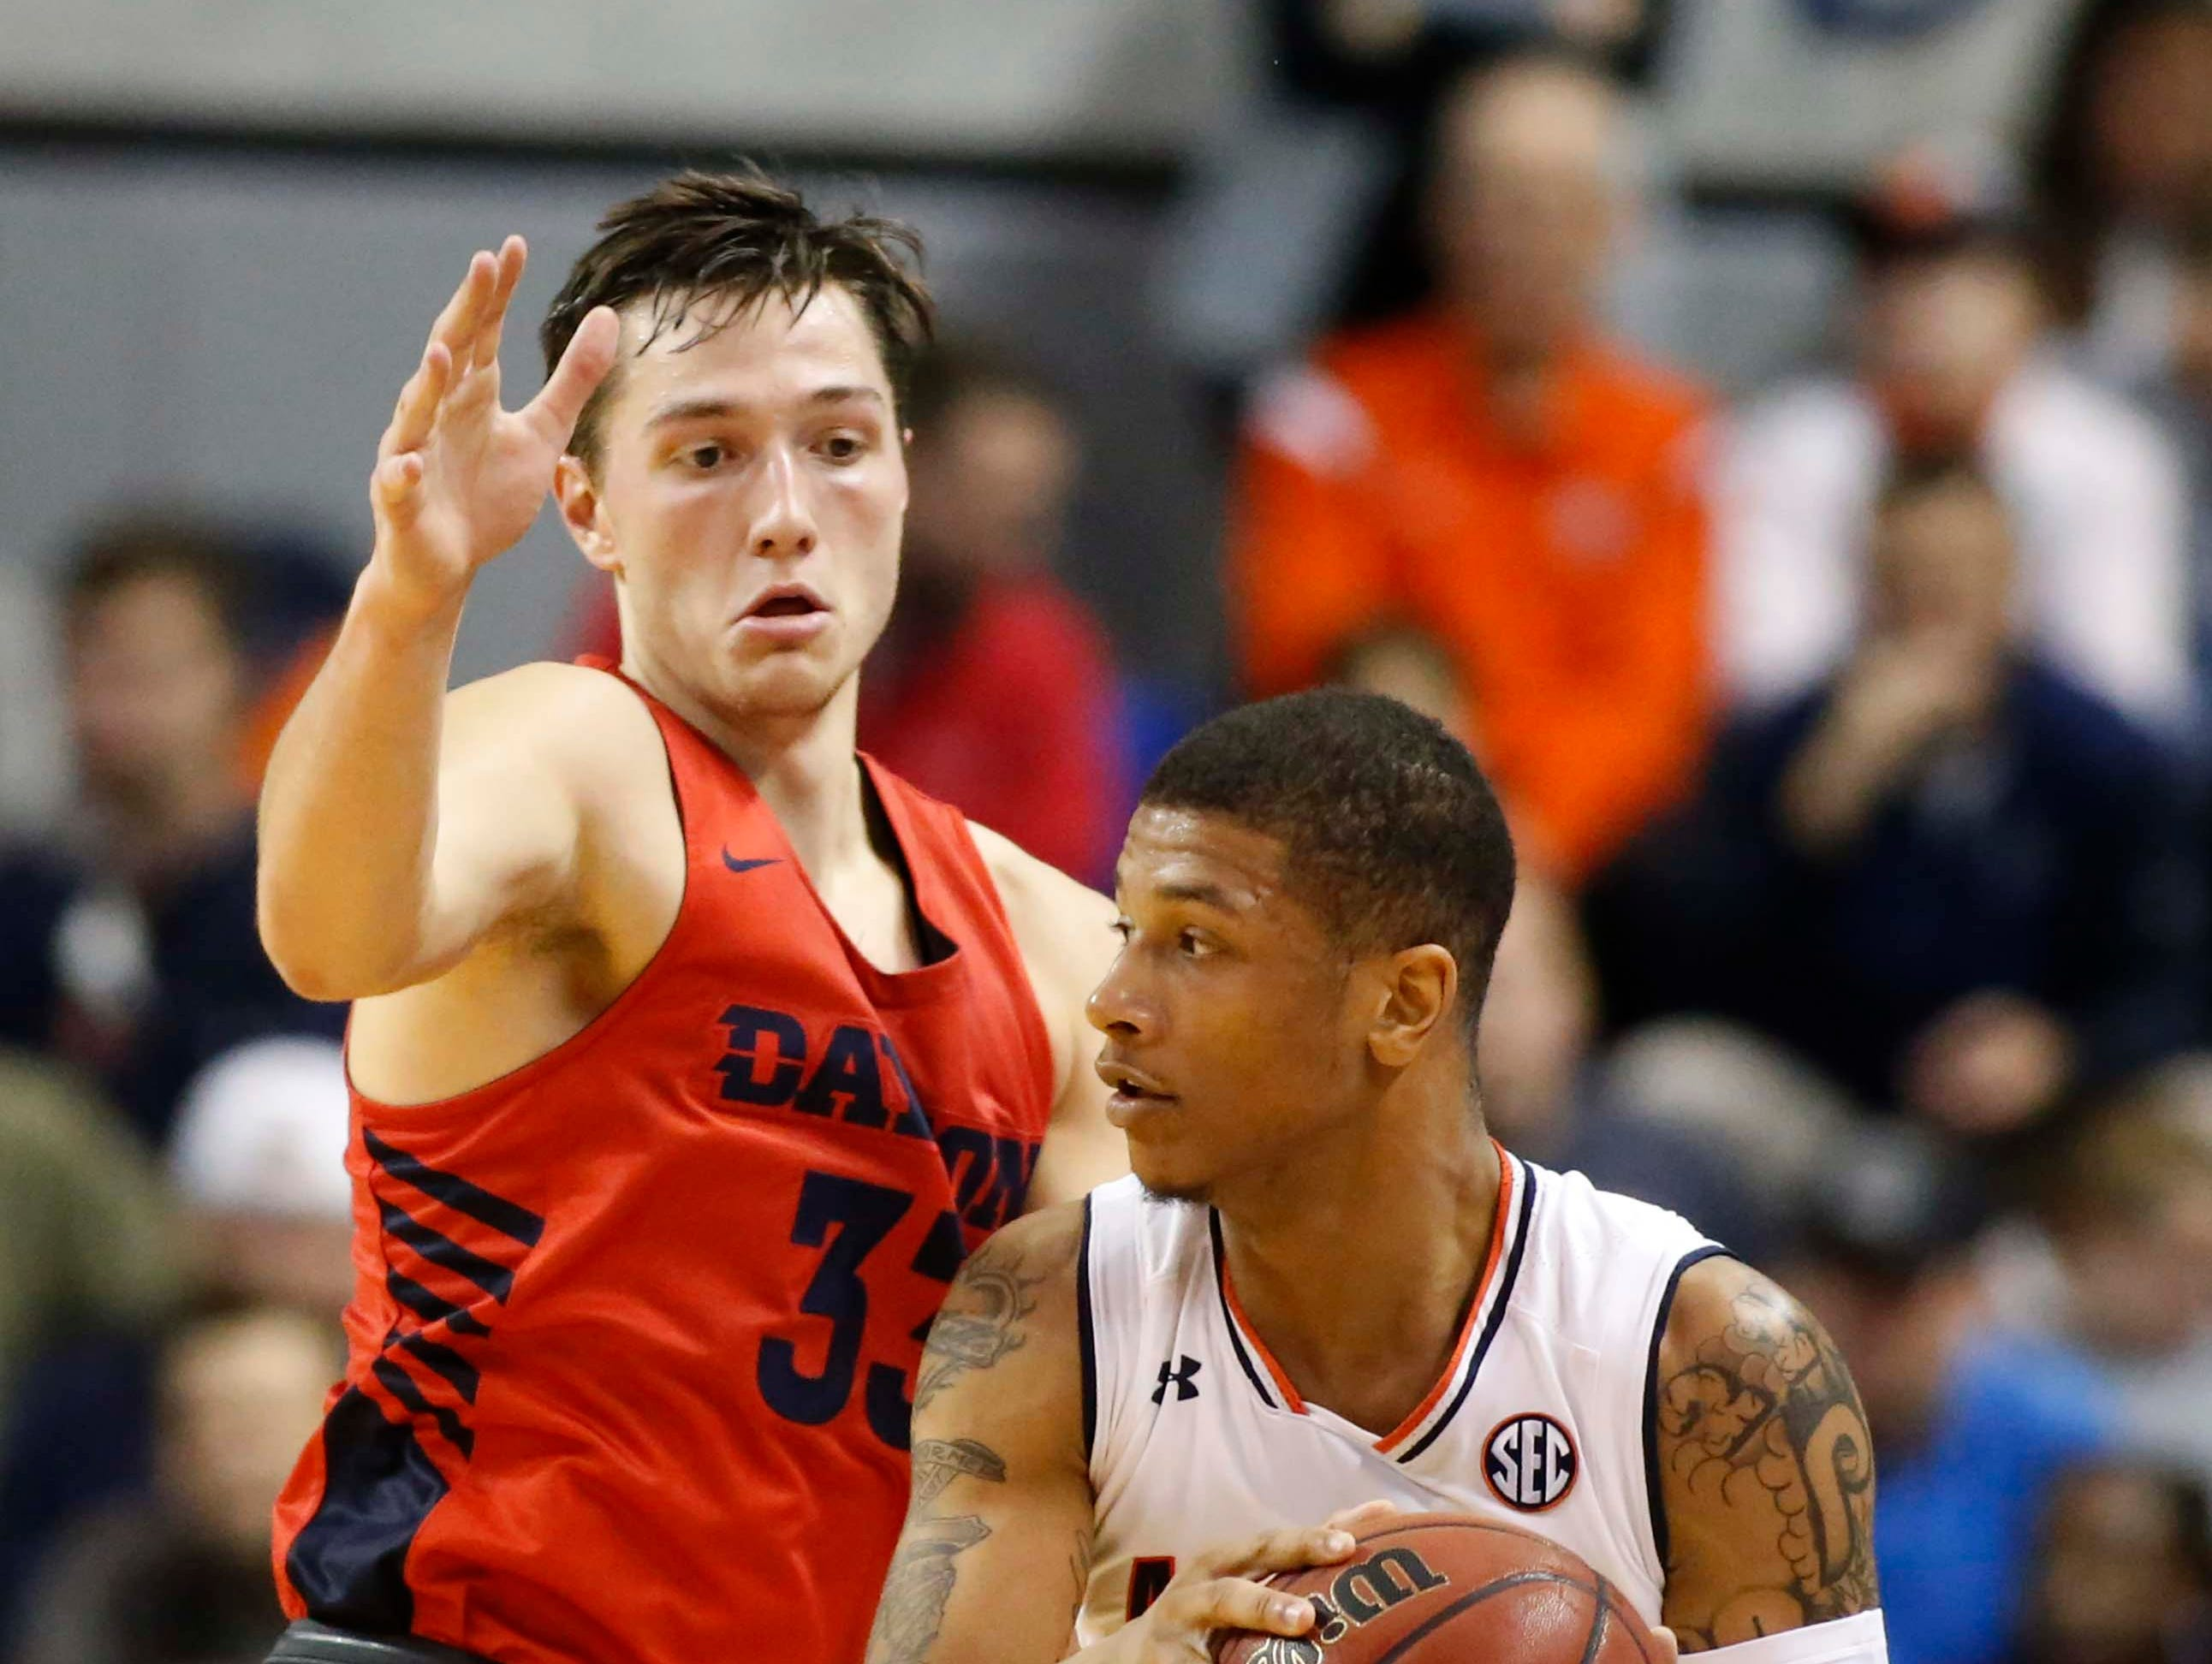 Dec 8, 2018; Auburn, AL, USA;  Auburn Tigers guard Samir Doughty (10) is pressured by Dayton Flyers forward Ryan Mikesell (33) during the first half at Auburn Arena. Mandatory Credit: John Reed-USA TODAY Sports